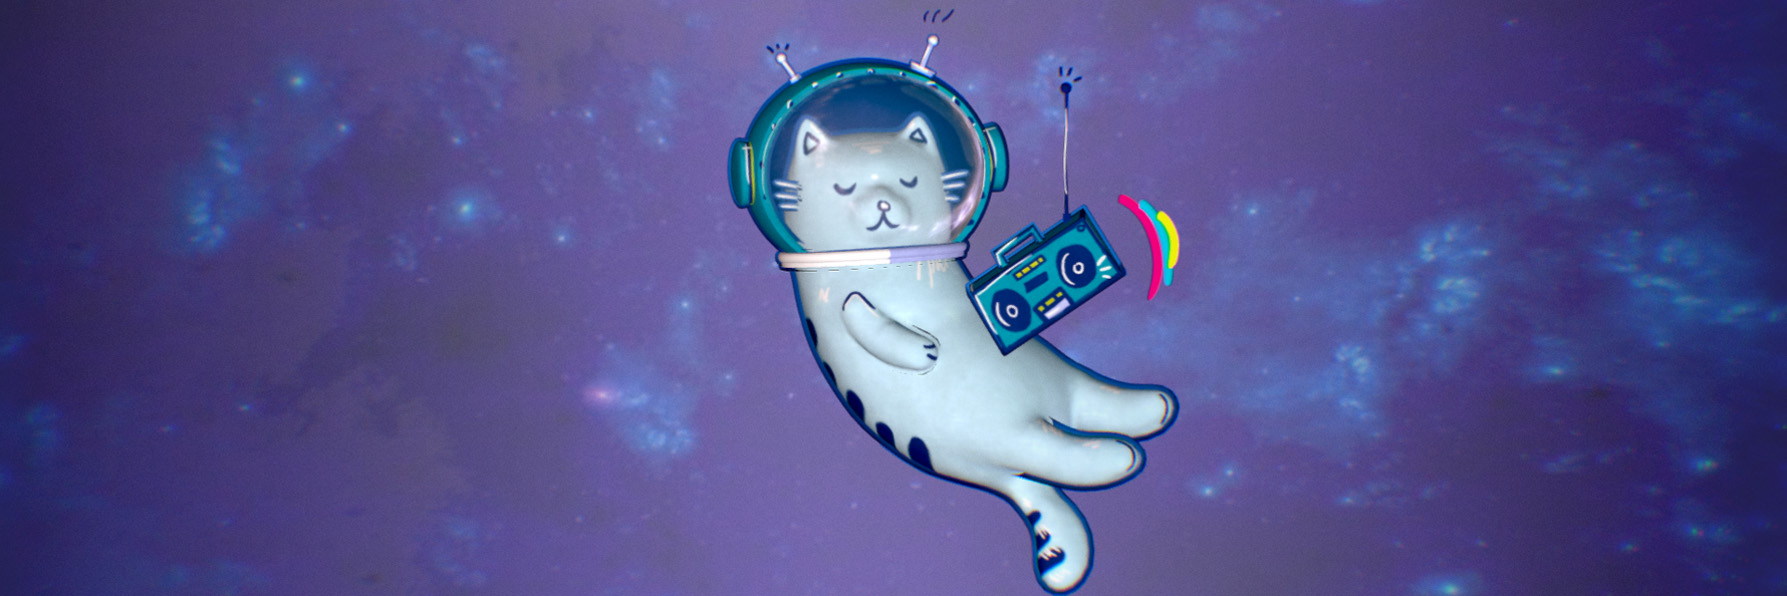 boombox space cat header image